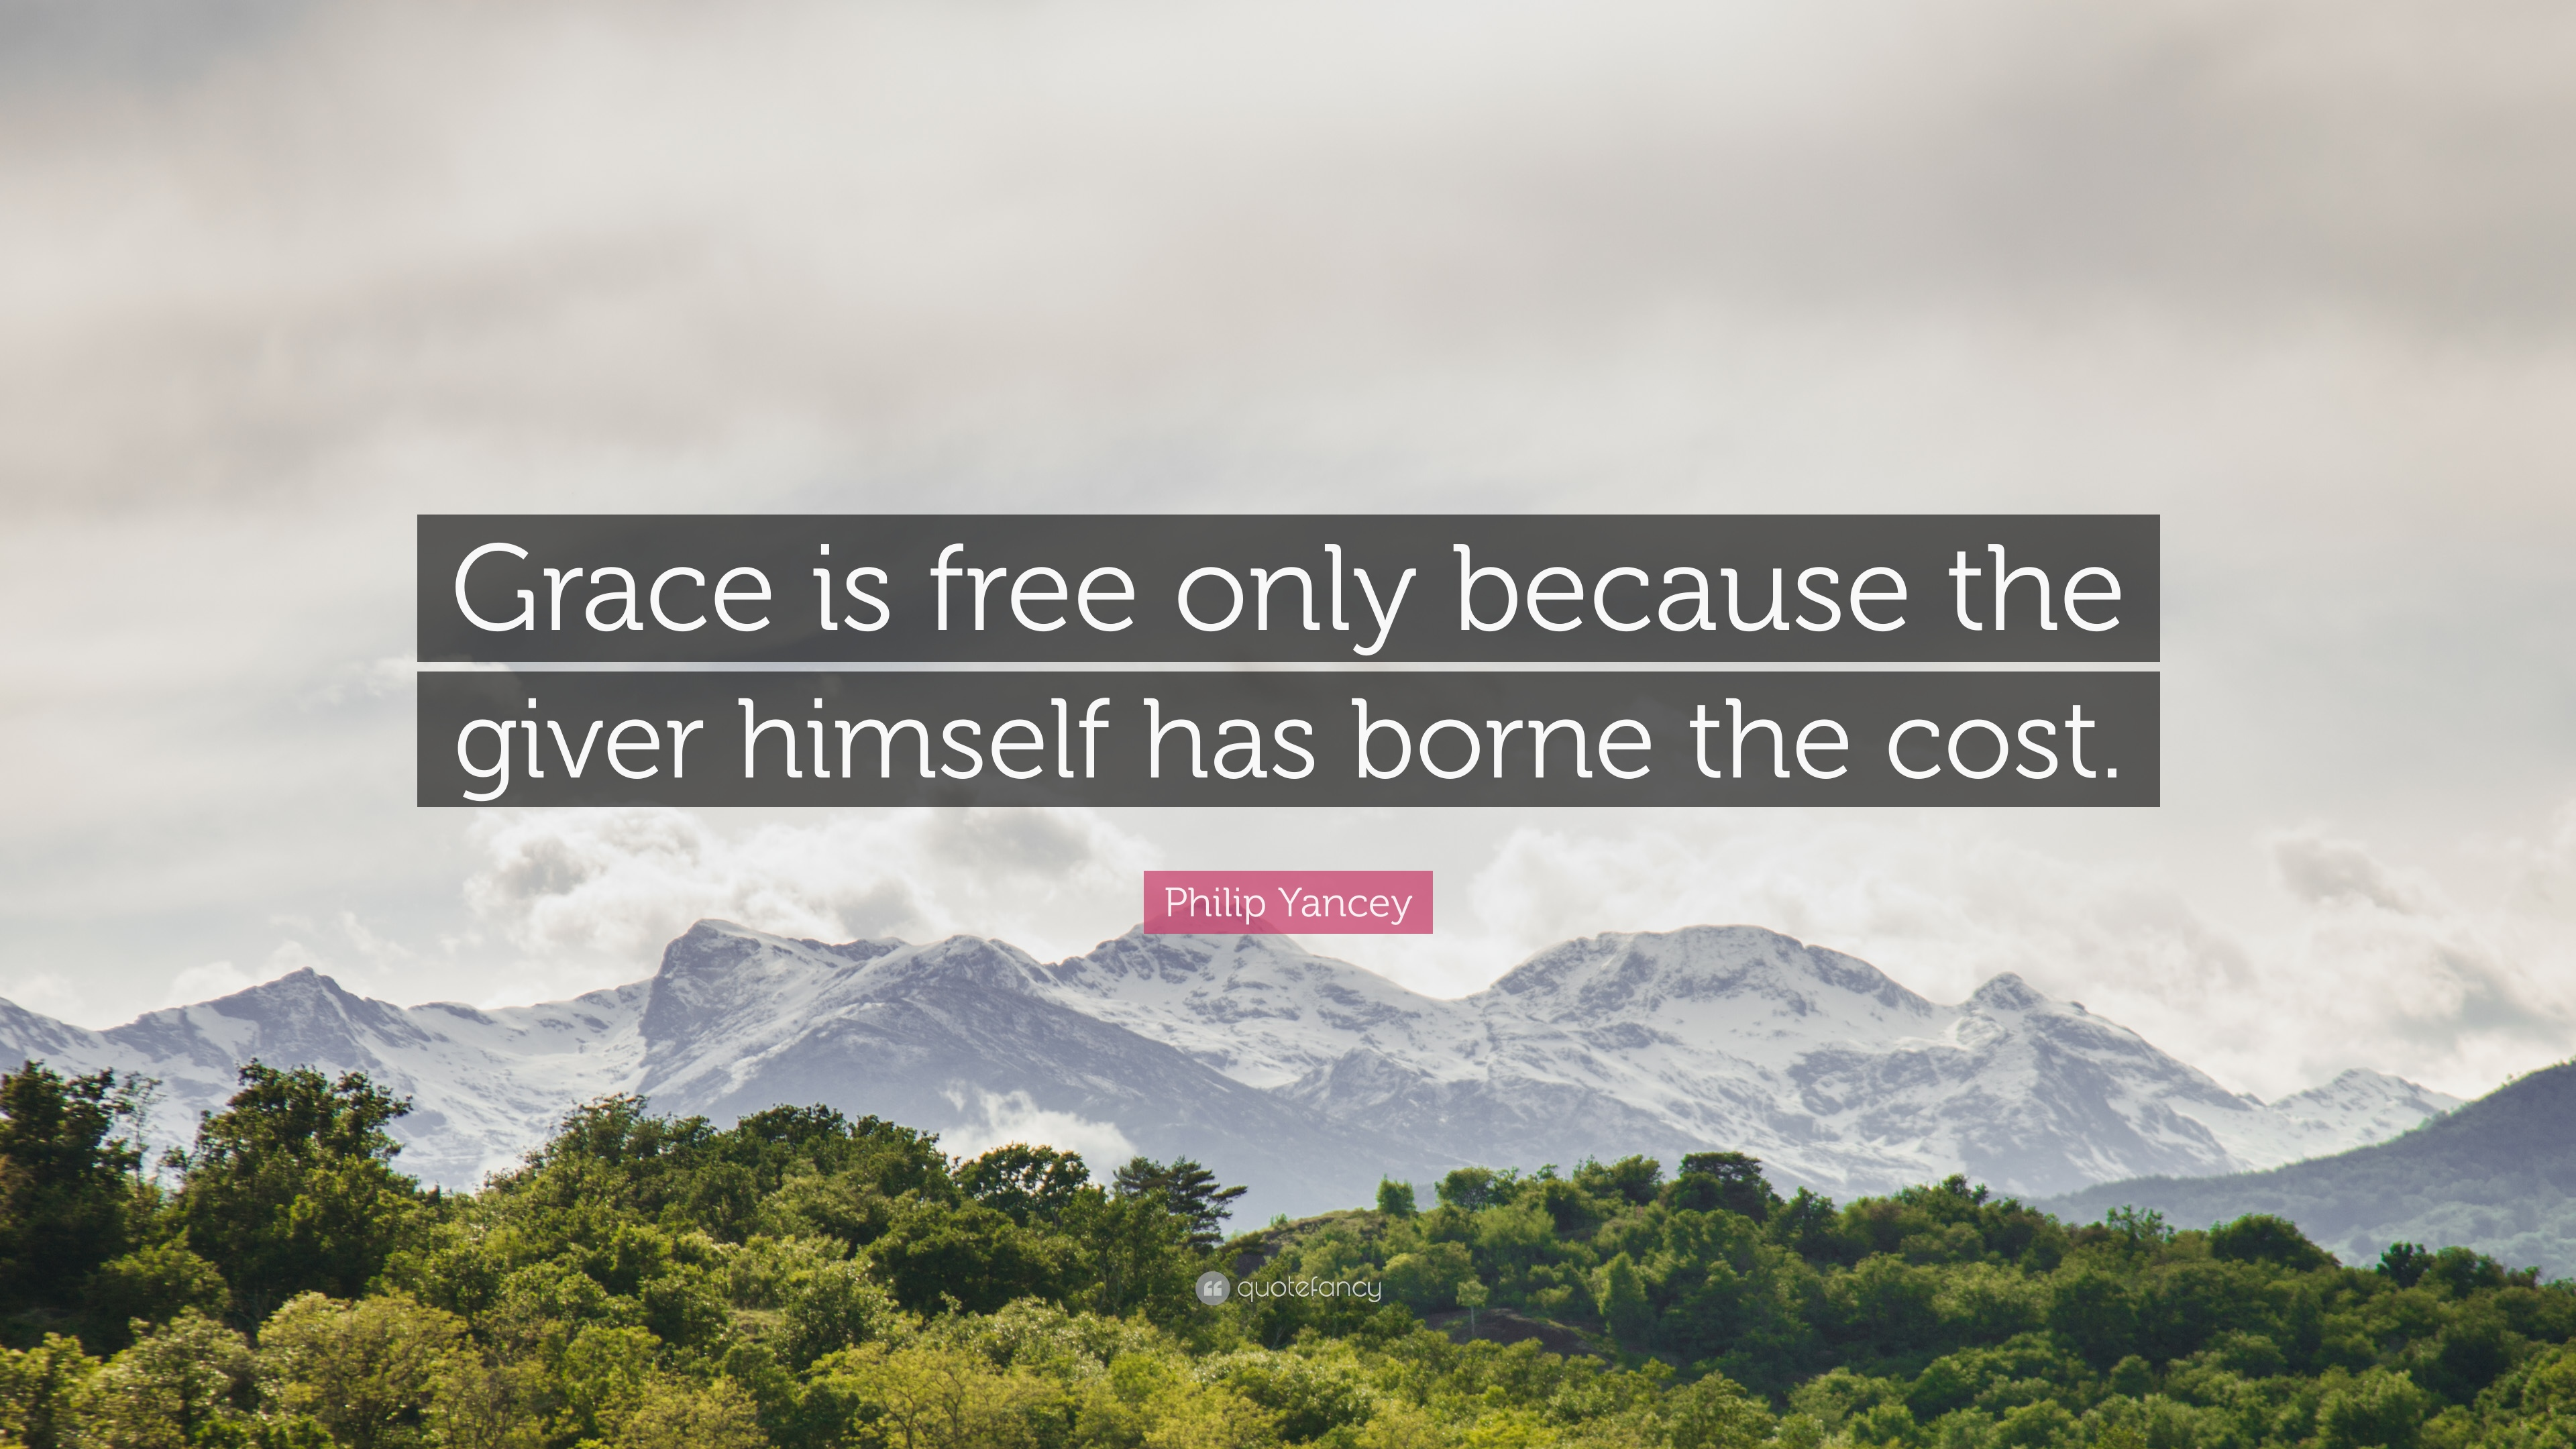 philip yancey quote grace is free only because the giver himself